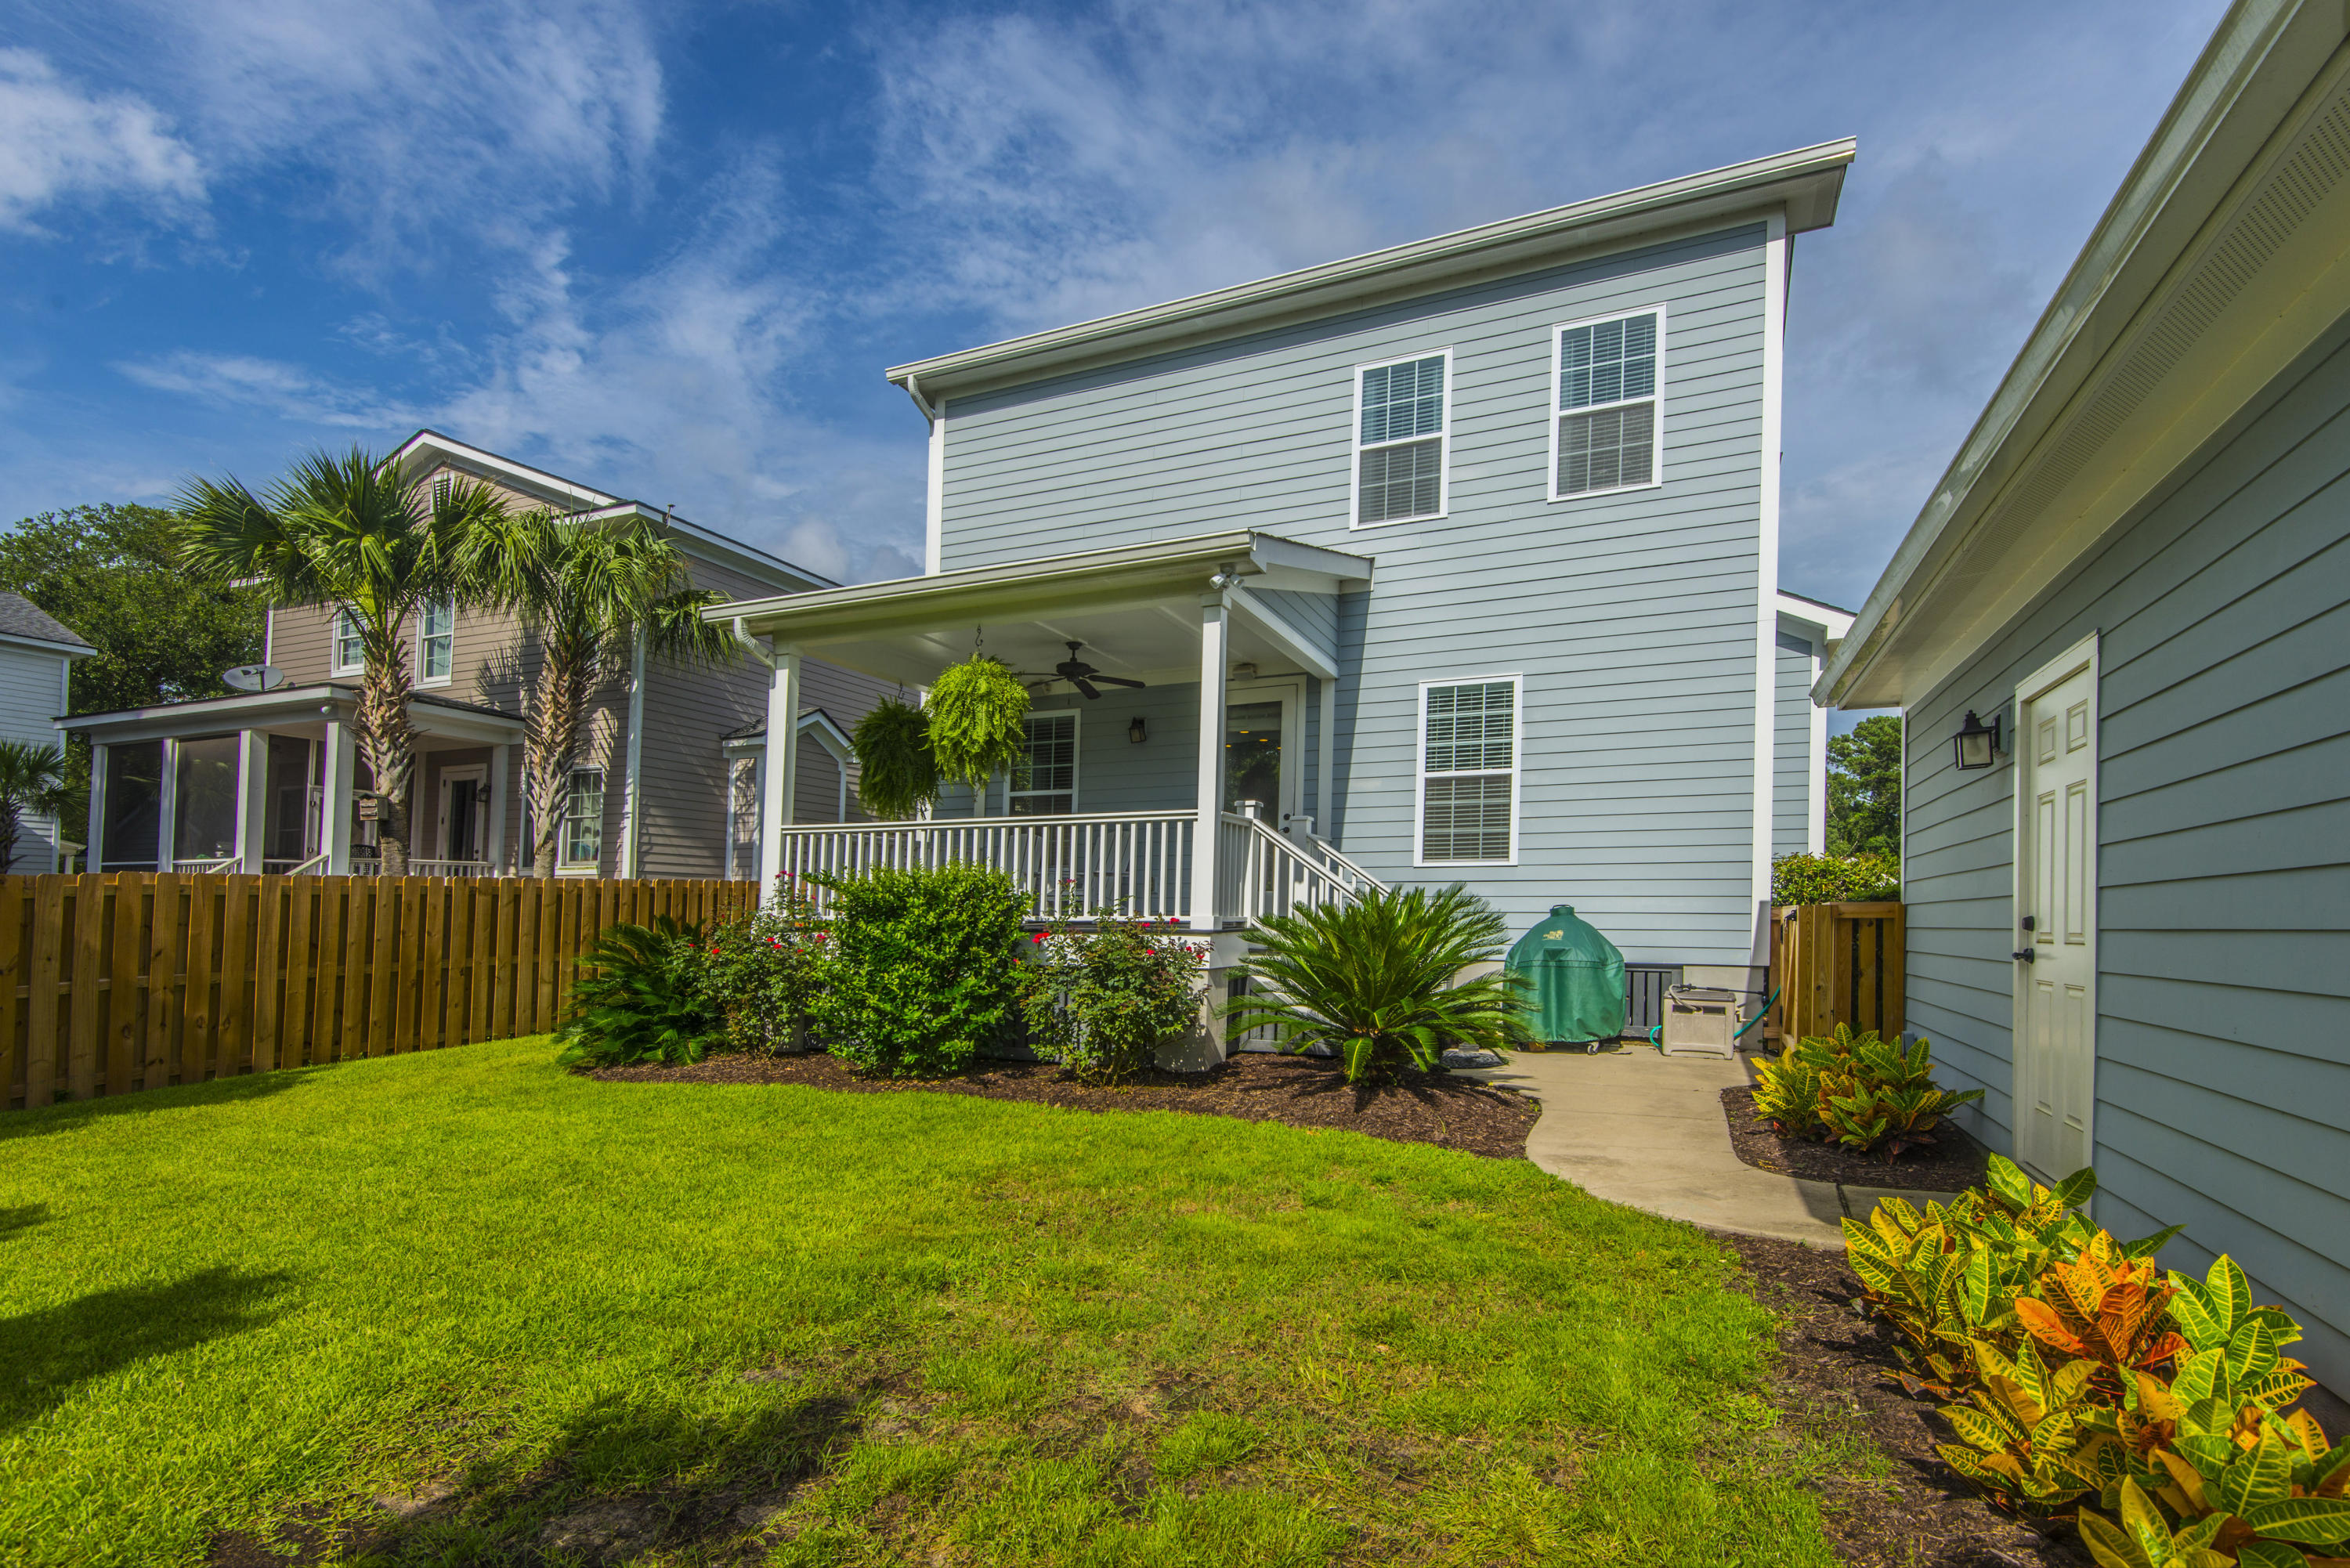 Cloudbreak Court Homes For Sale - 627 Cloudbreak, Charleston, SC - 9